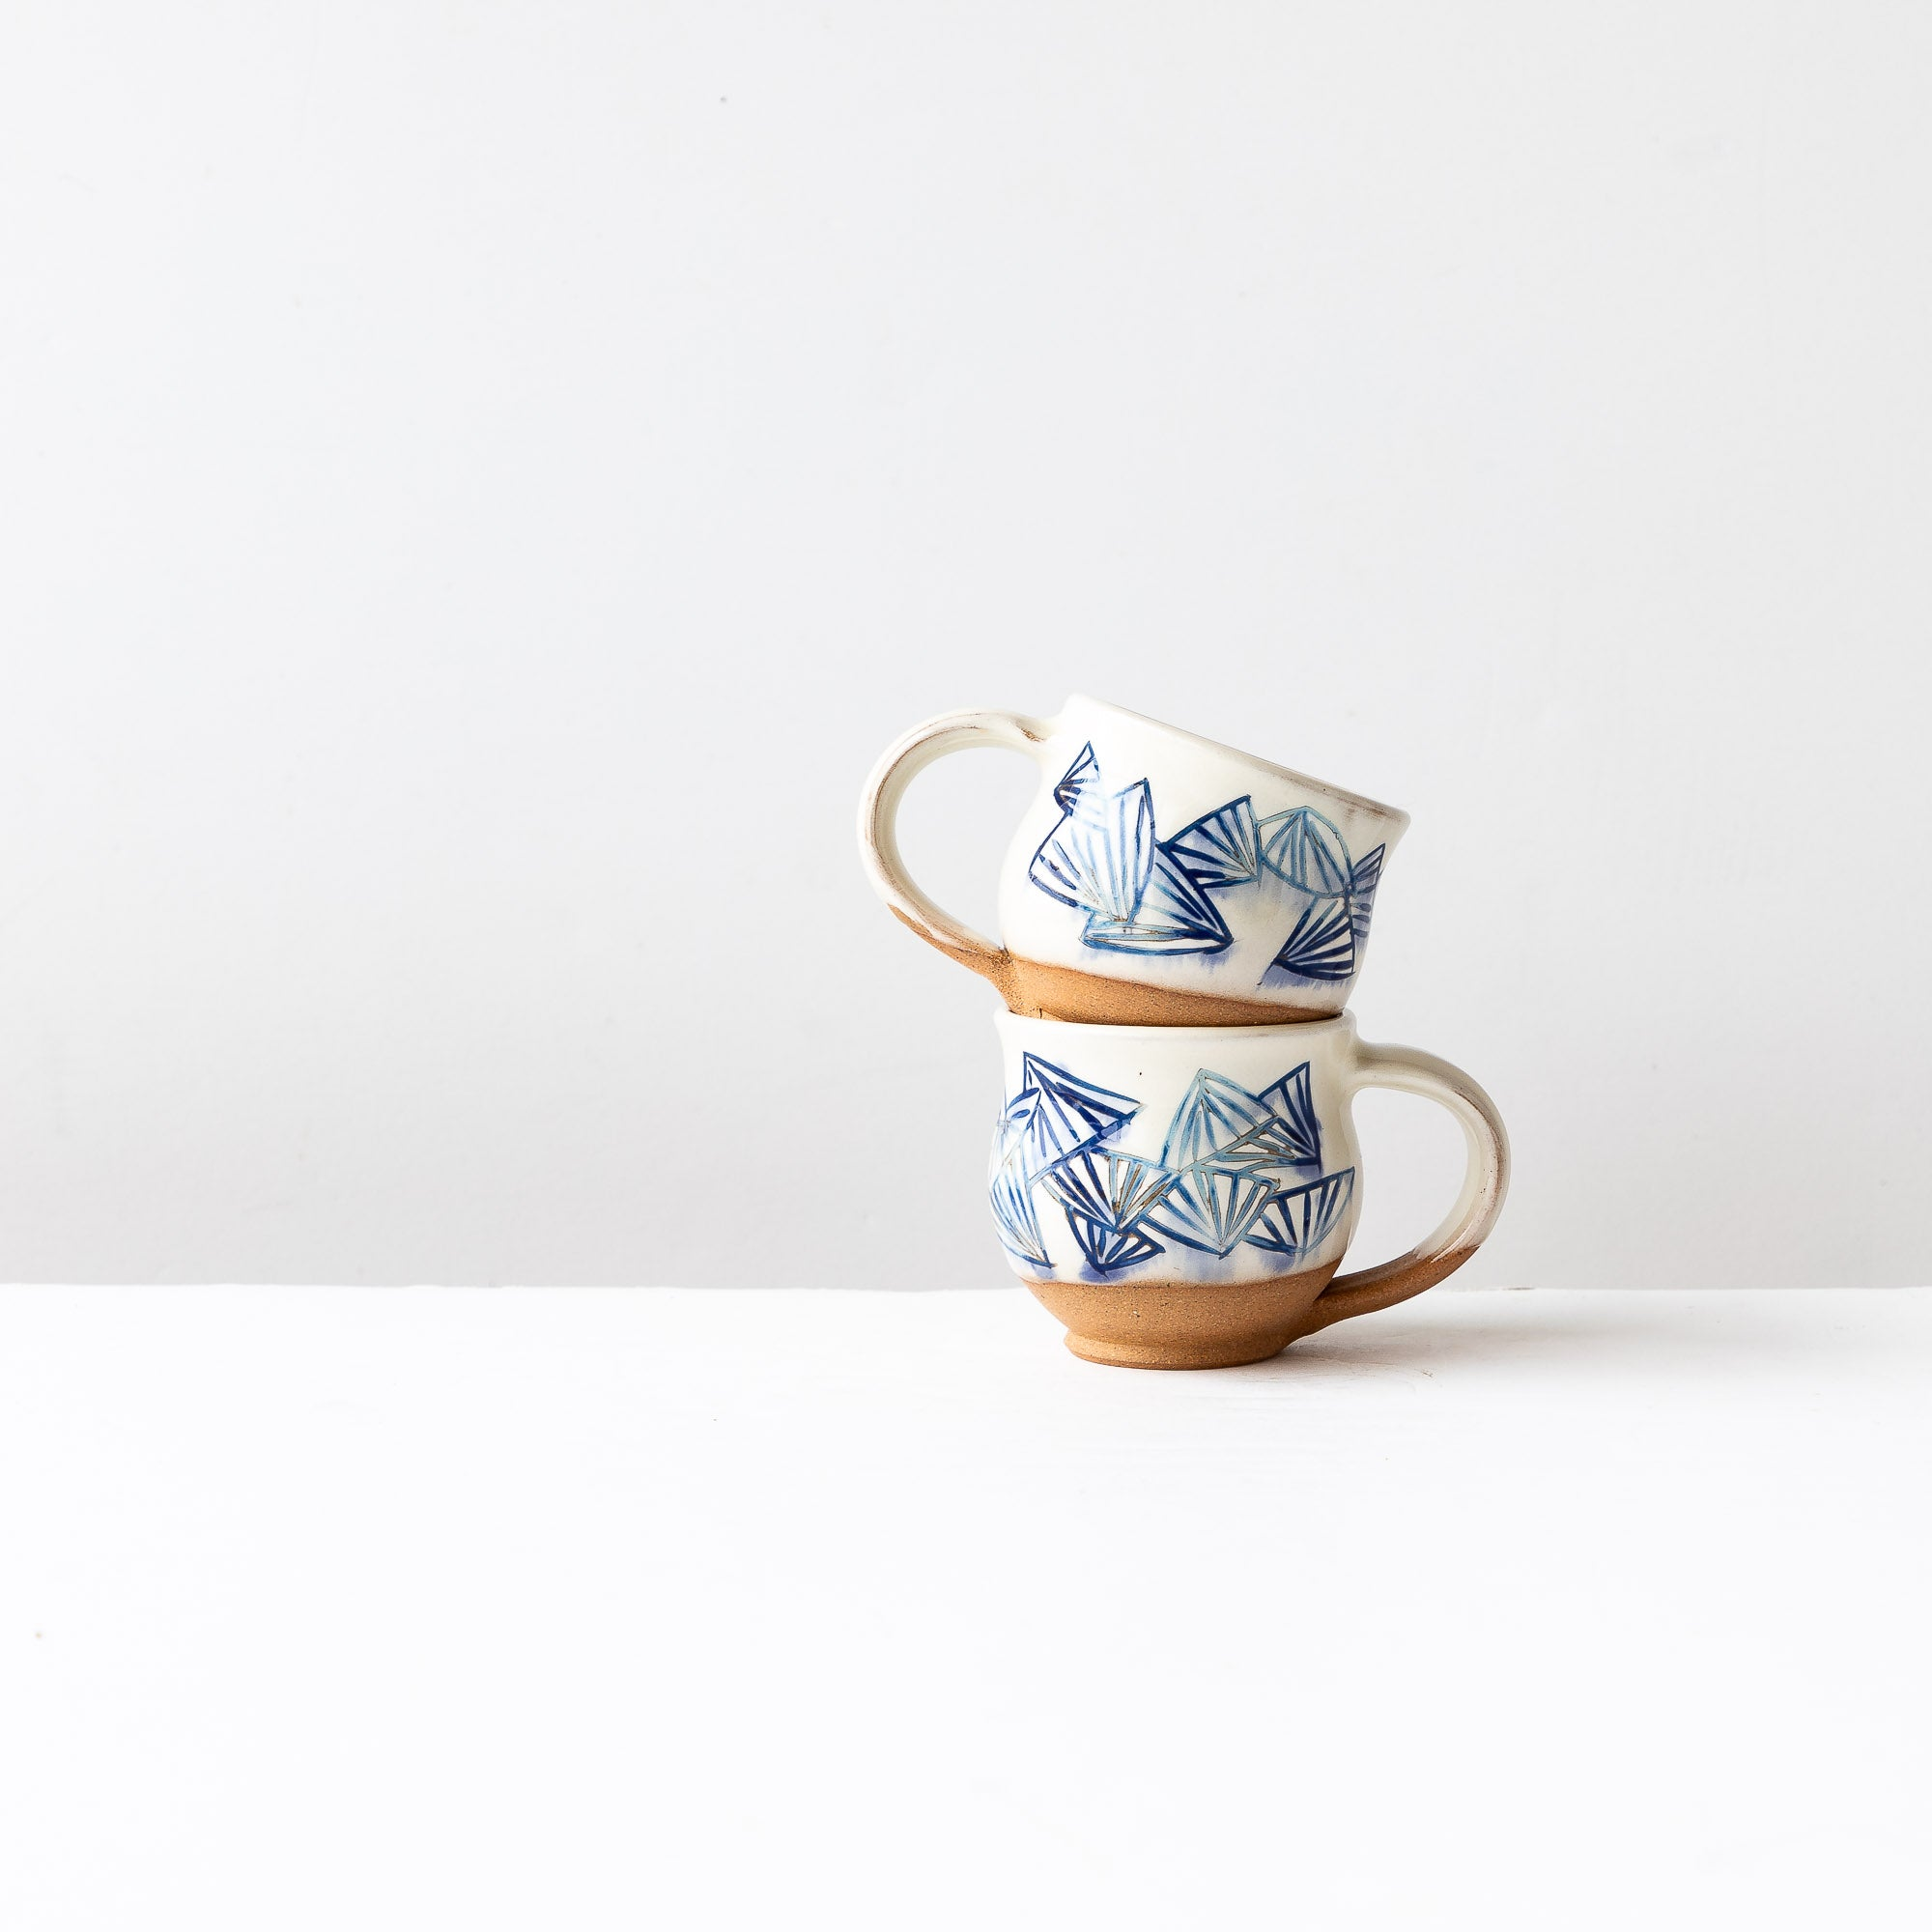 Blue Pattern - Two Handmade Mishima Espresso Cups With Folding Fan Pattern - Sold by Chic & Basta